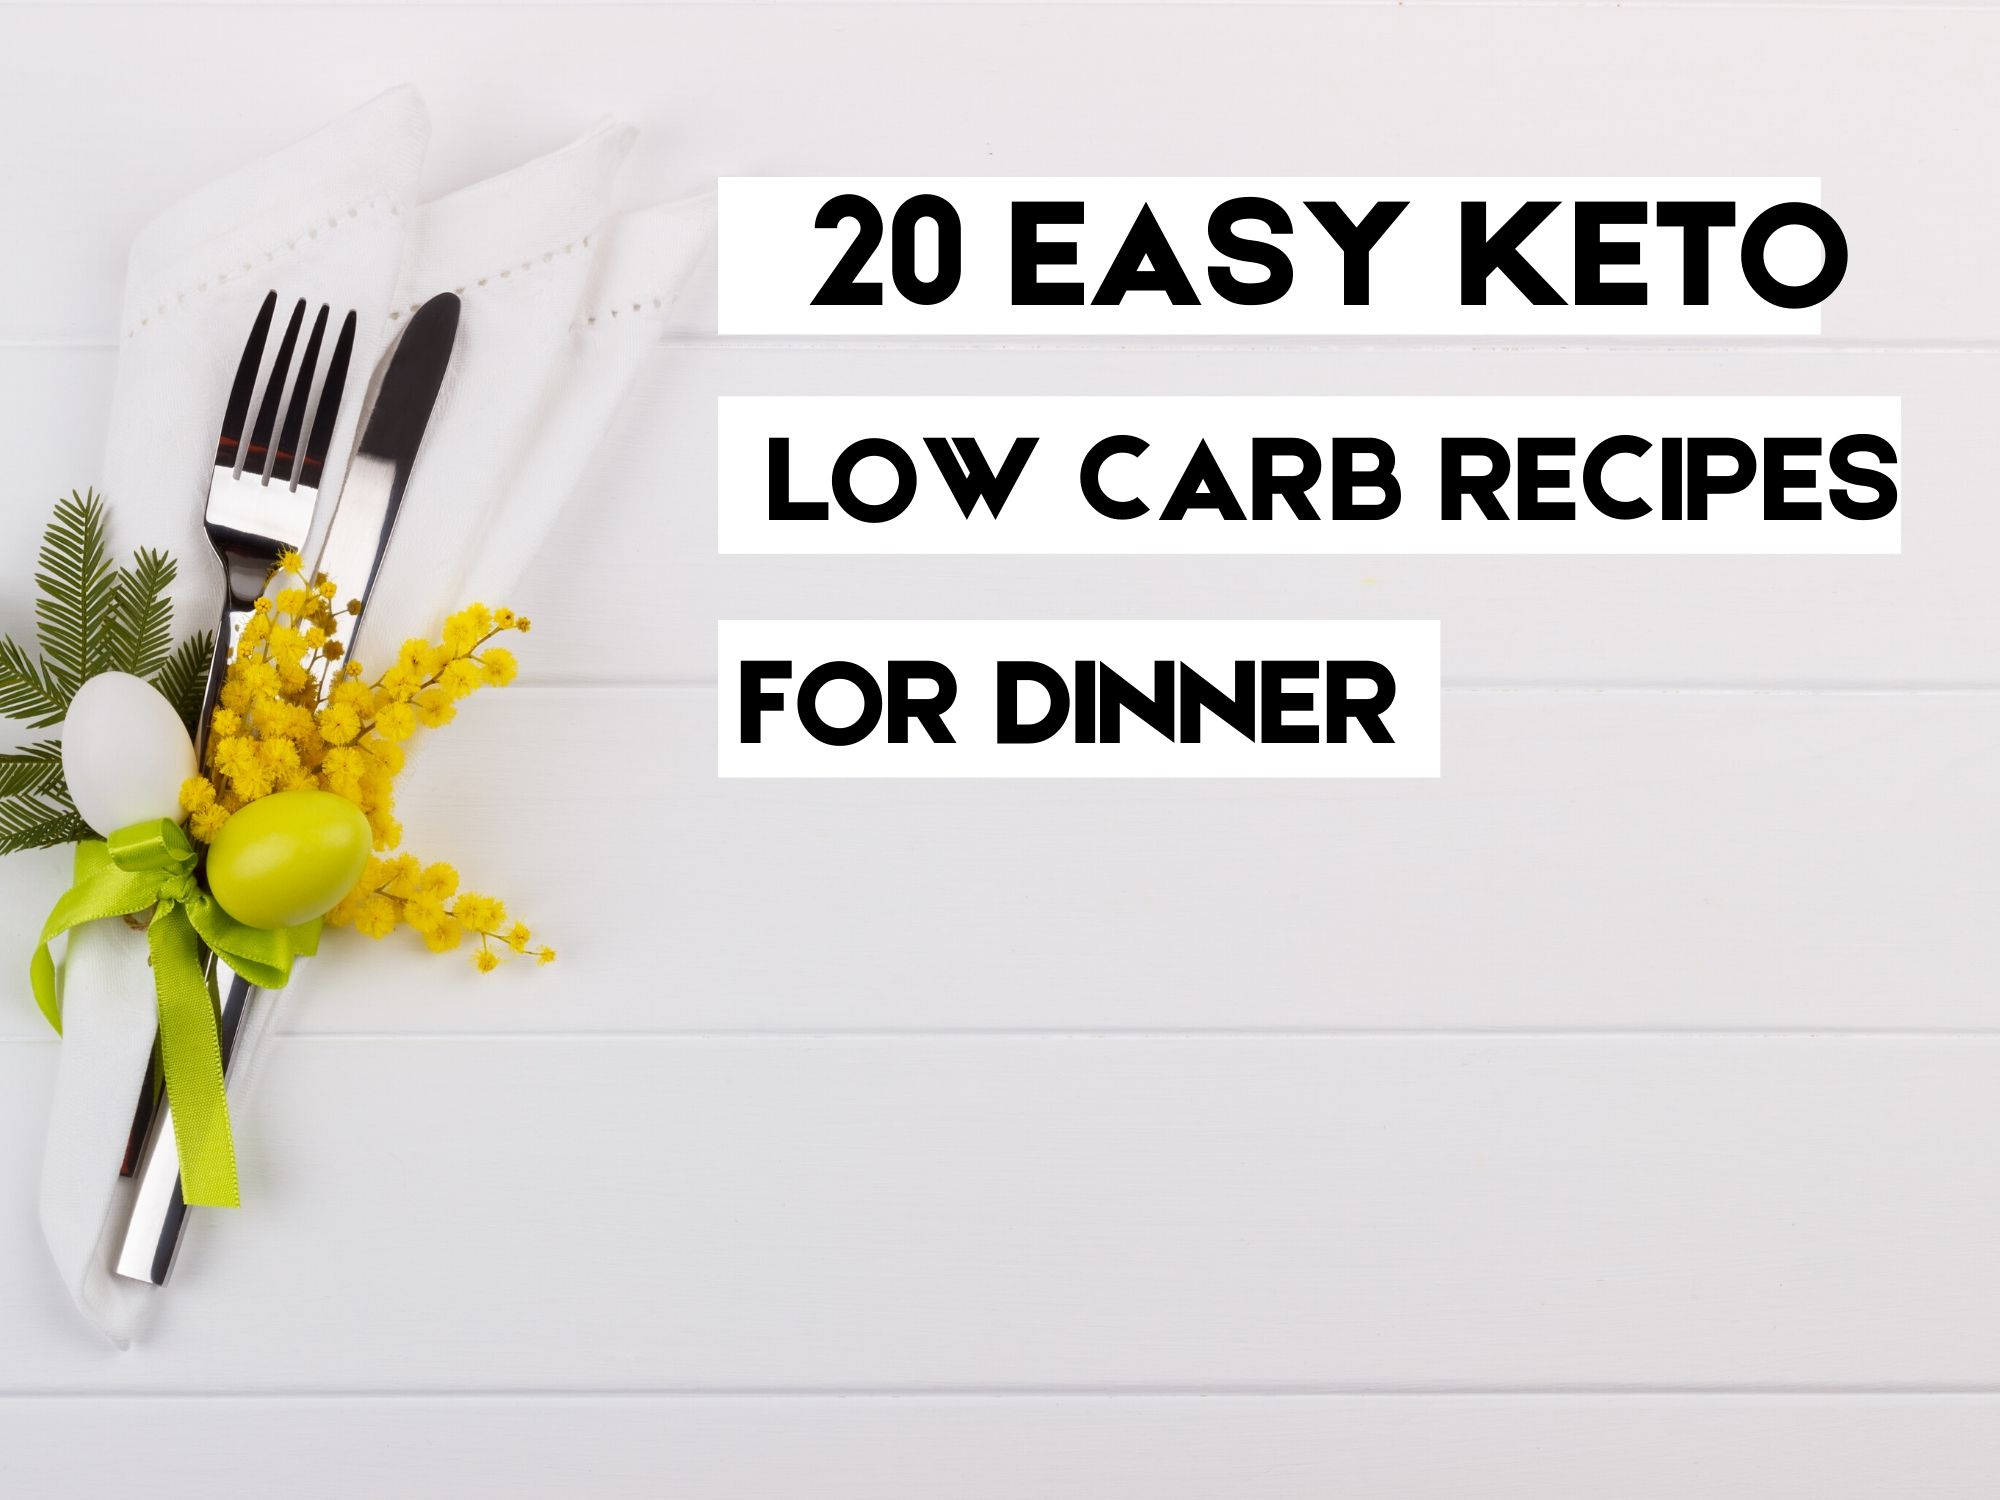 20 Easy Keto Low Carb Recipes For Dinner - MYFINANCIALHILL